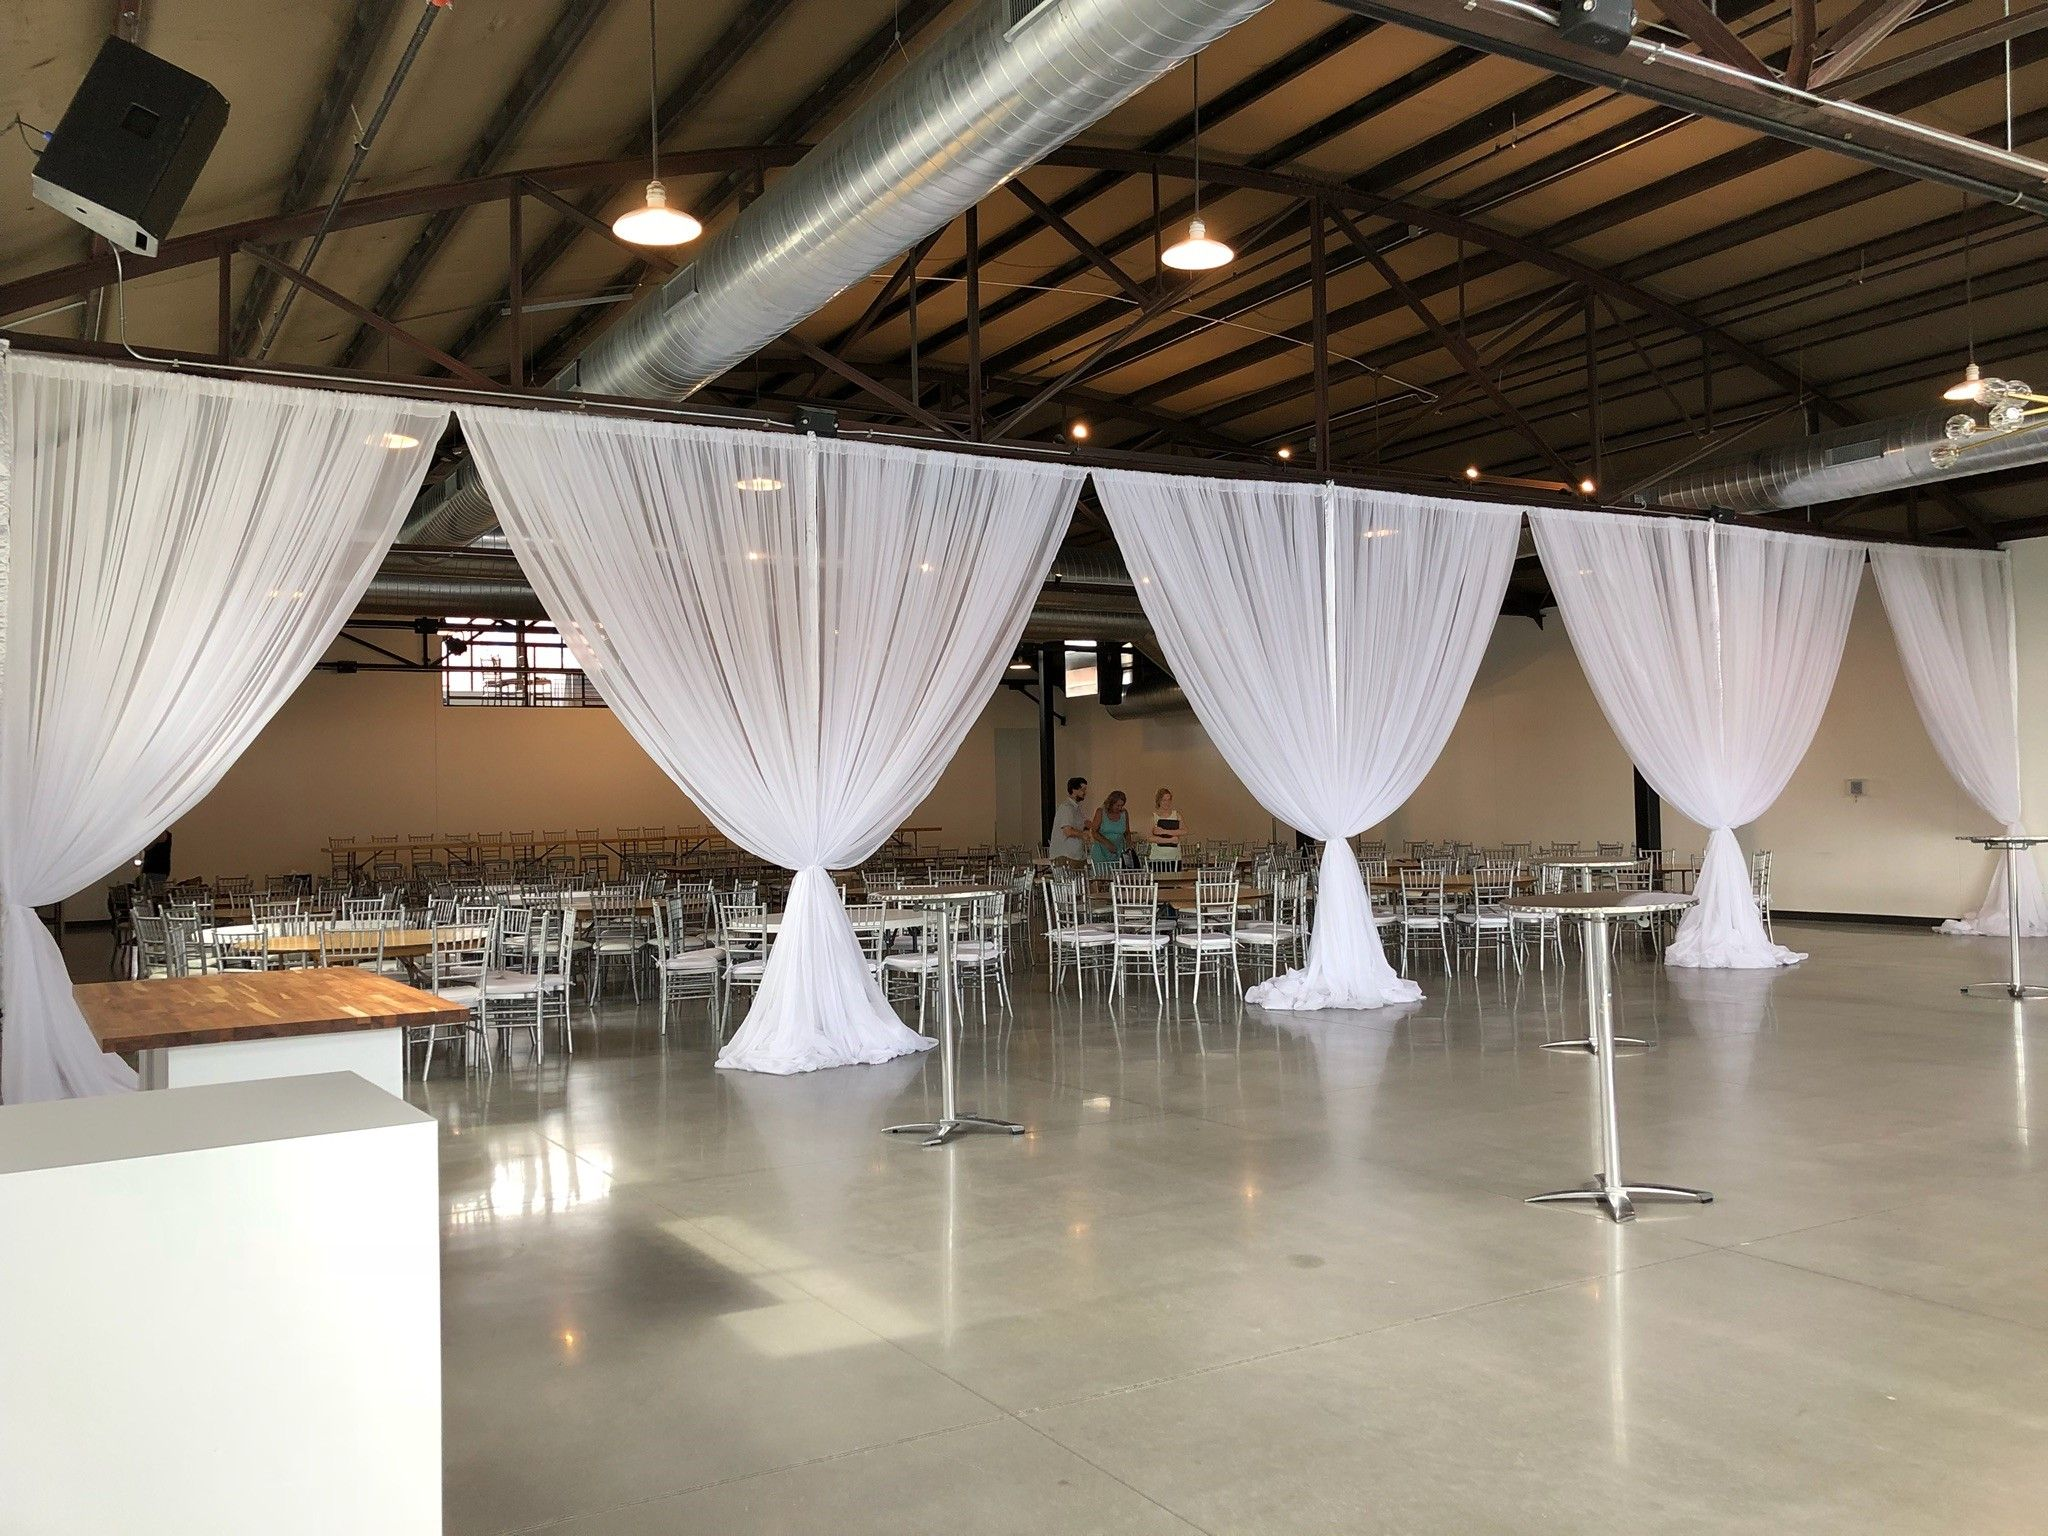 Wall Draping At Curate Event Center Des Moines Iowa Event Rental Wedding Wall Wedding Rentals